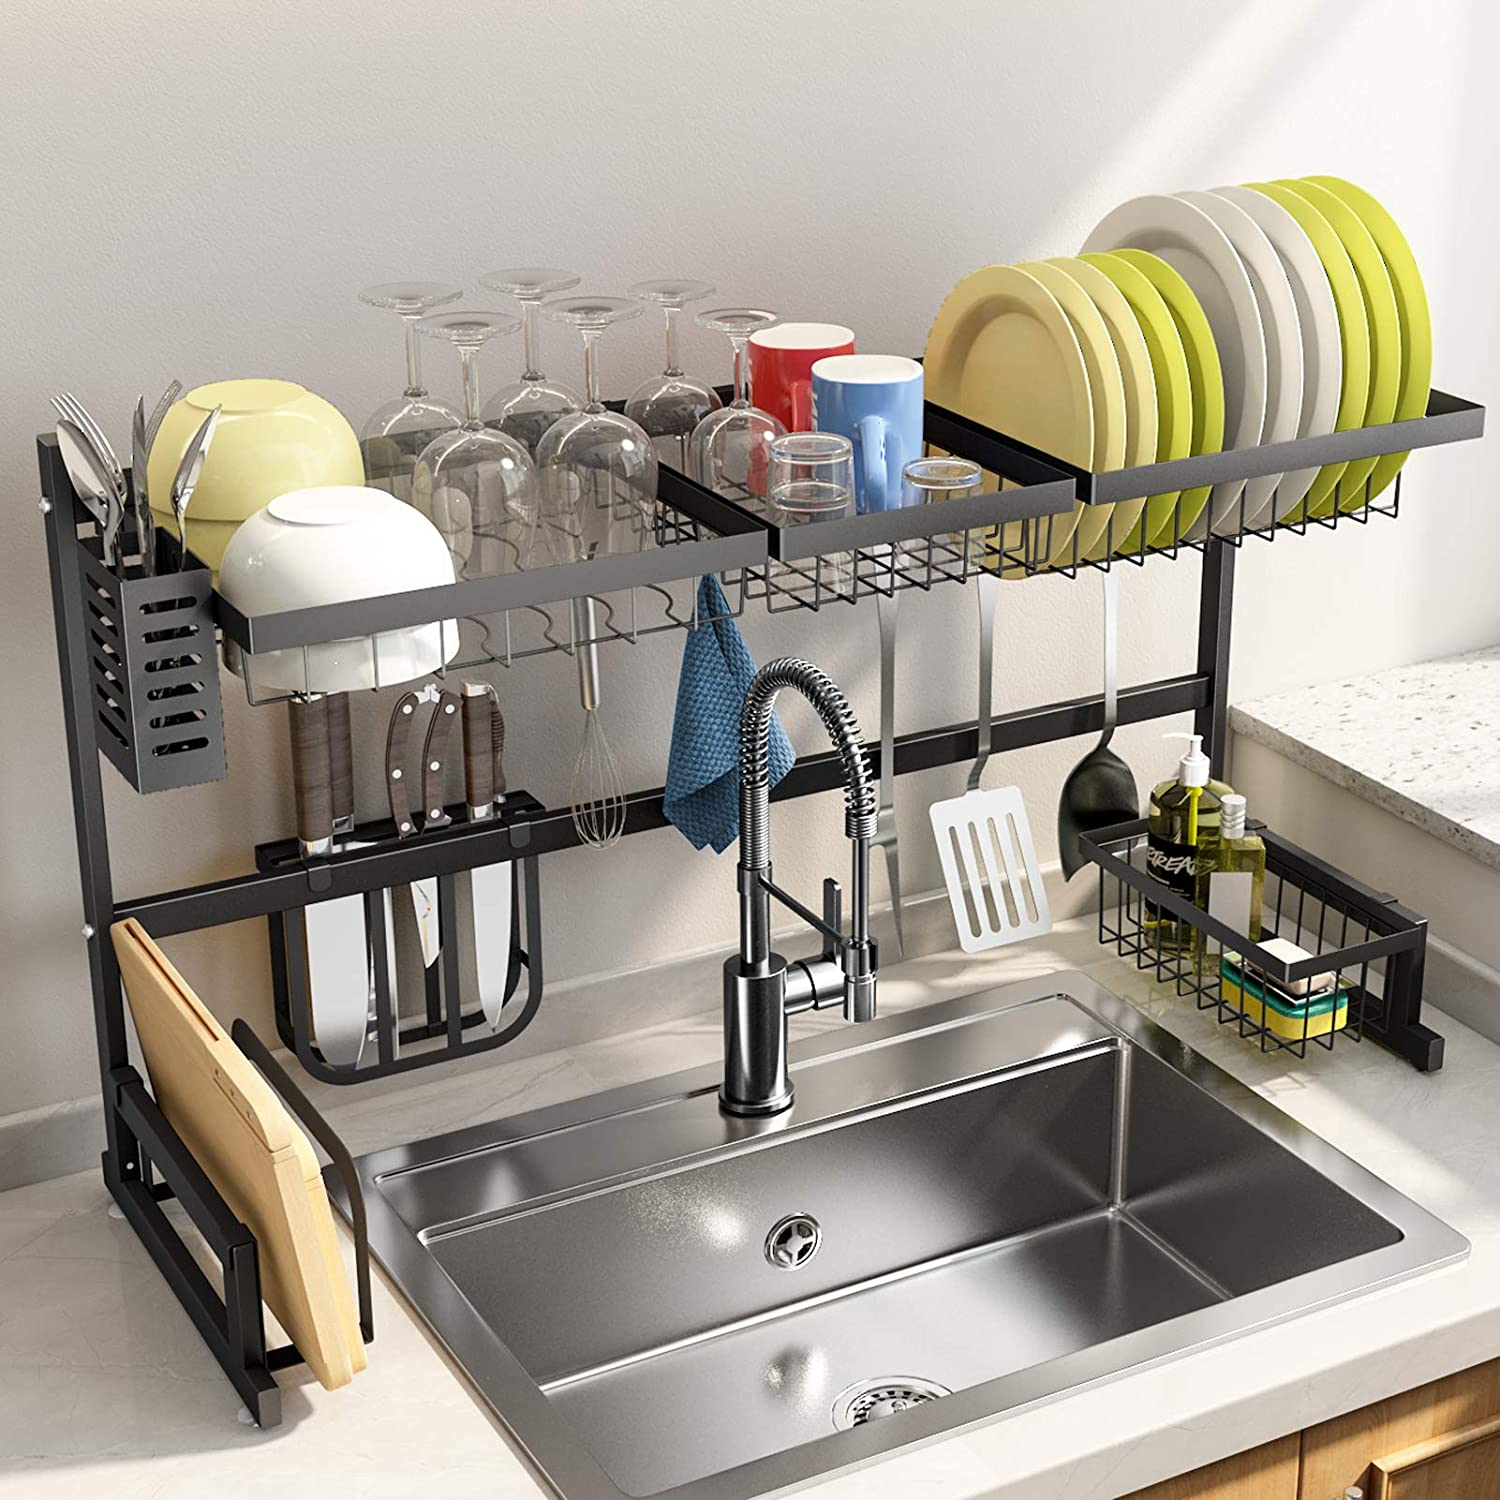 best over the sink drying racks of 2021